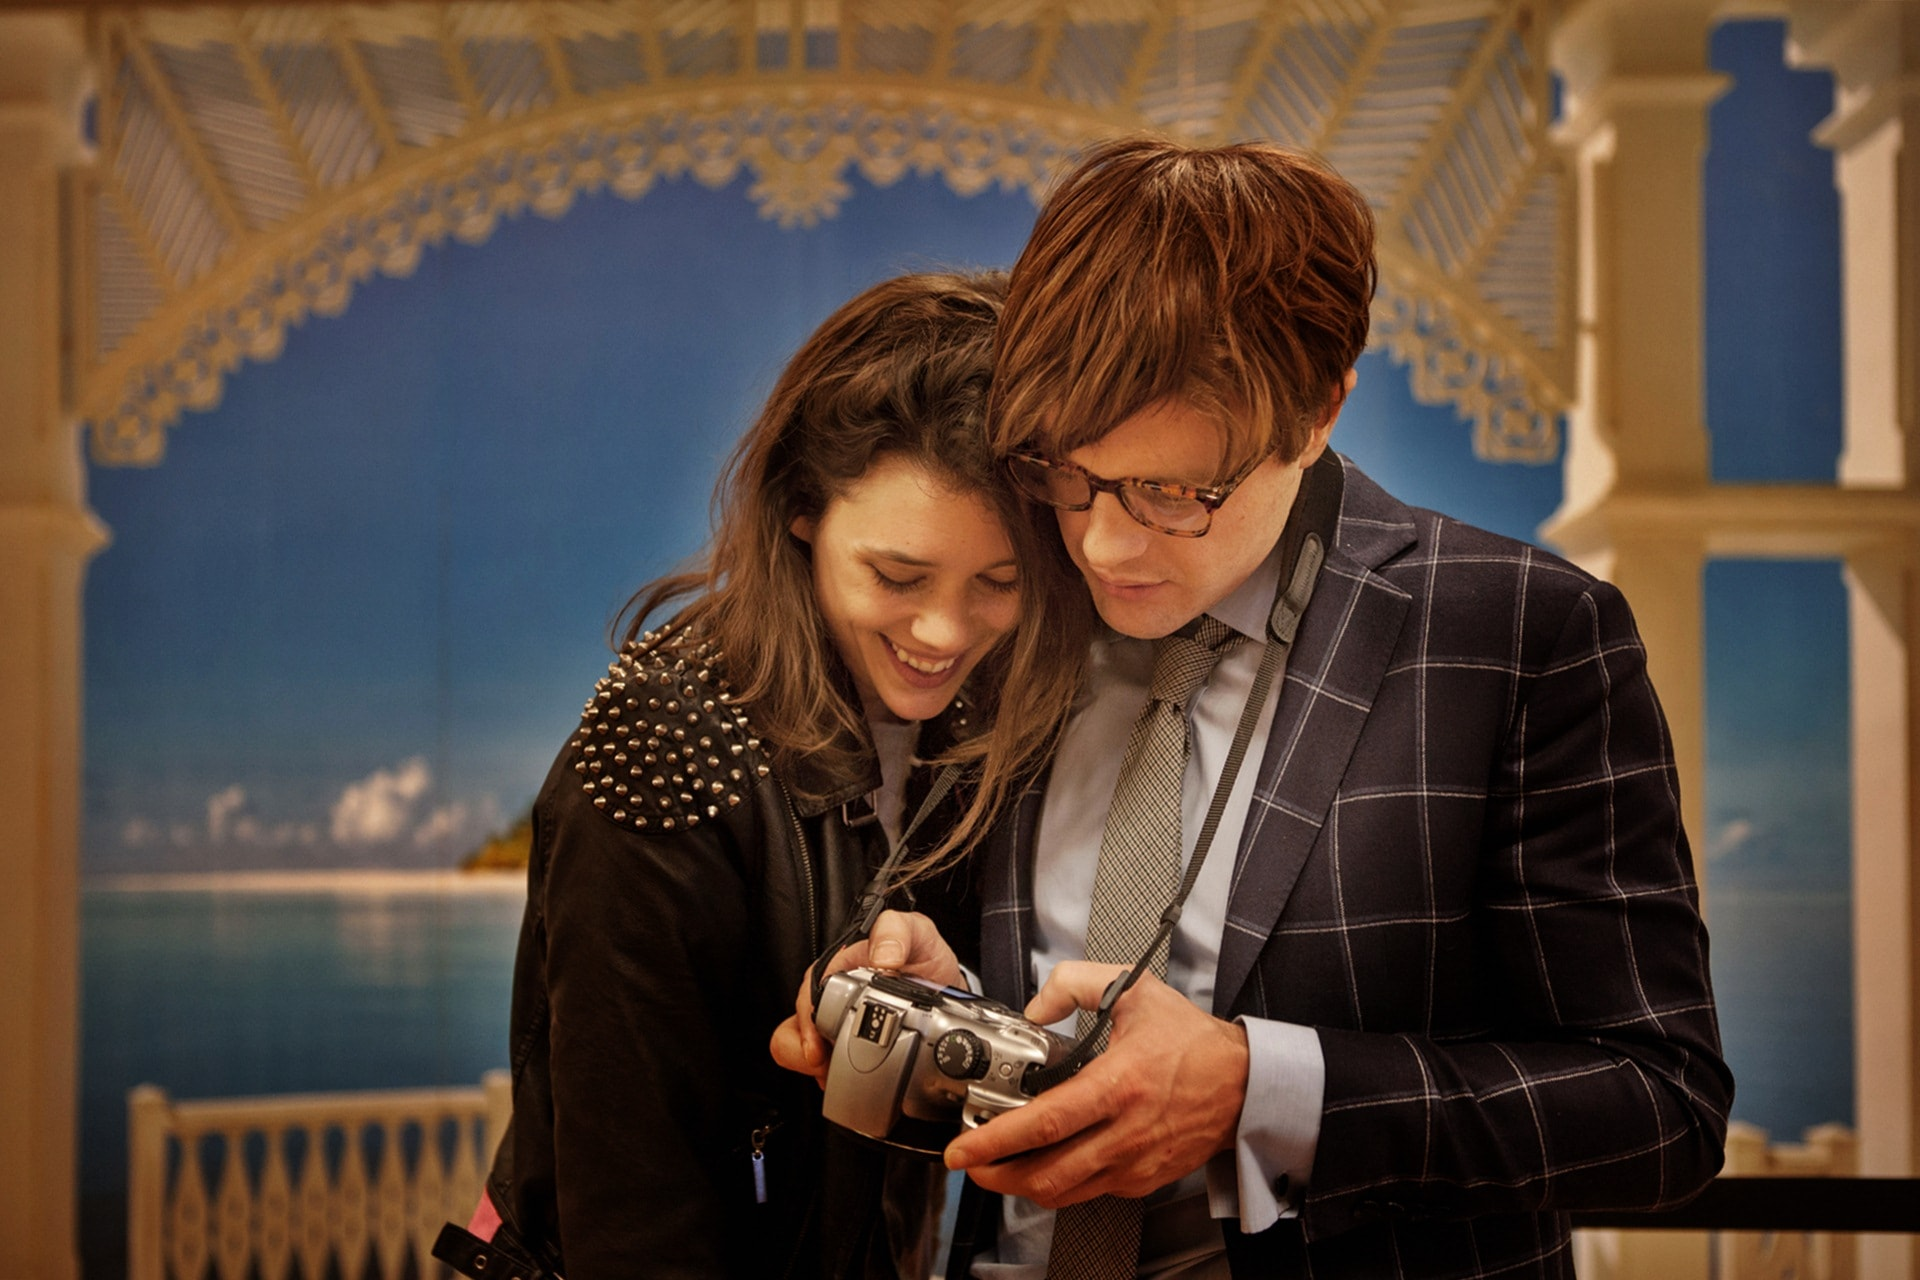 I Origins for mobile